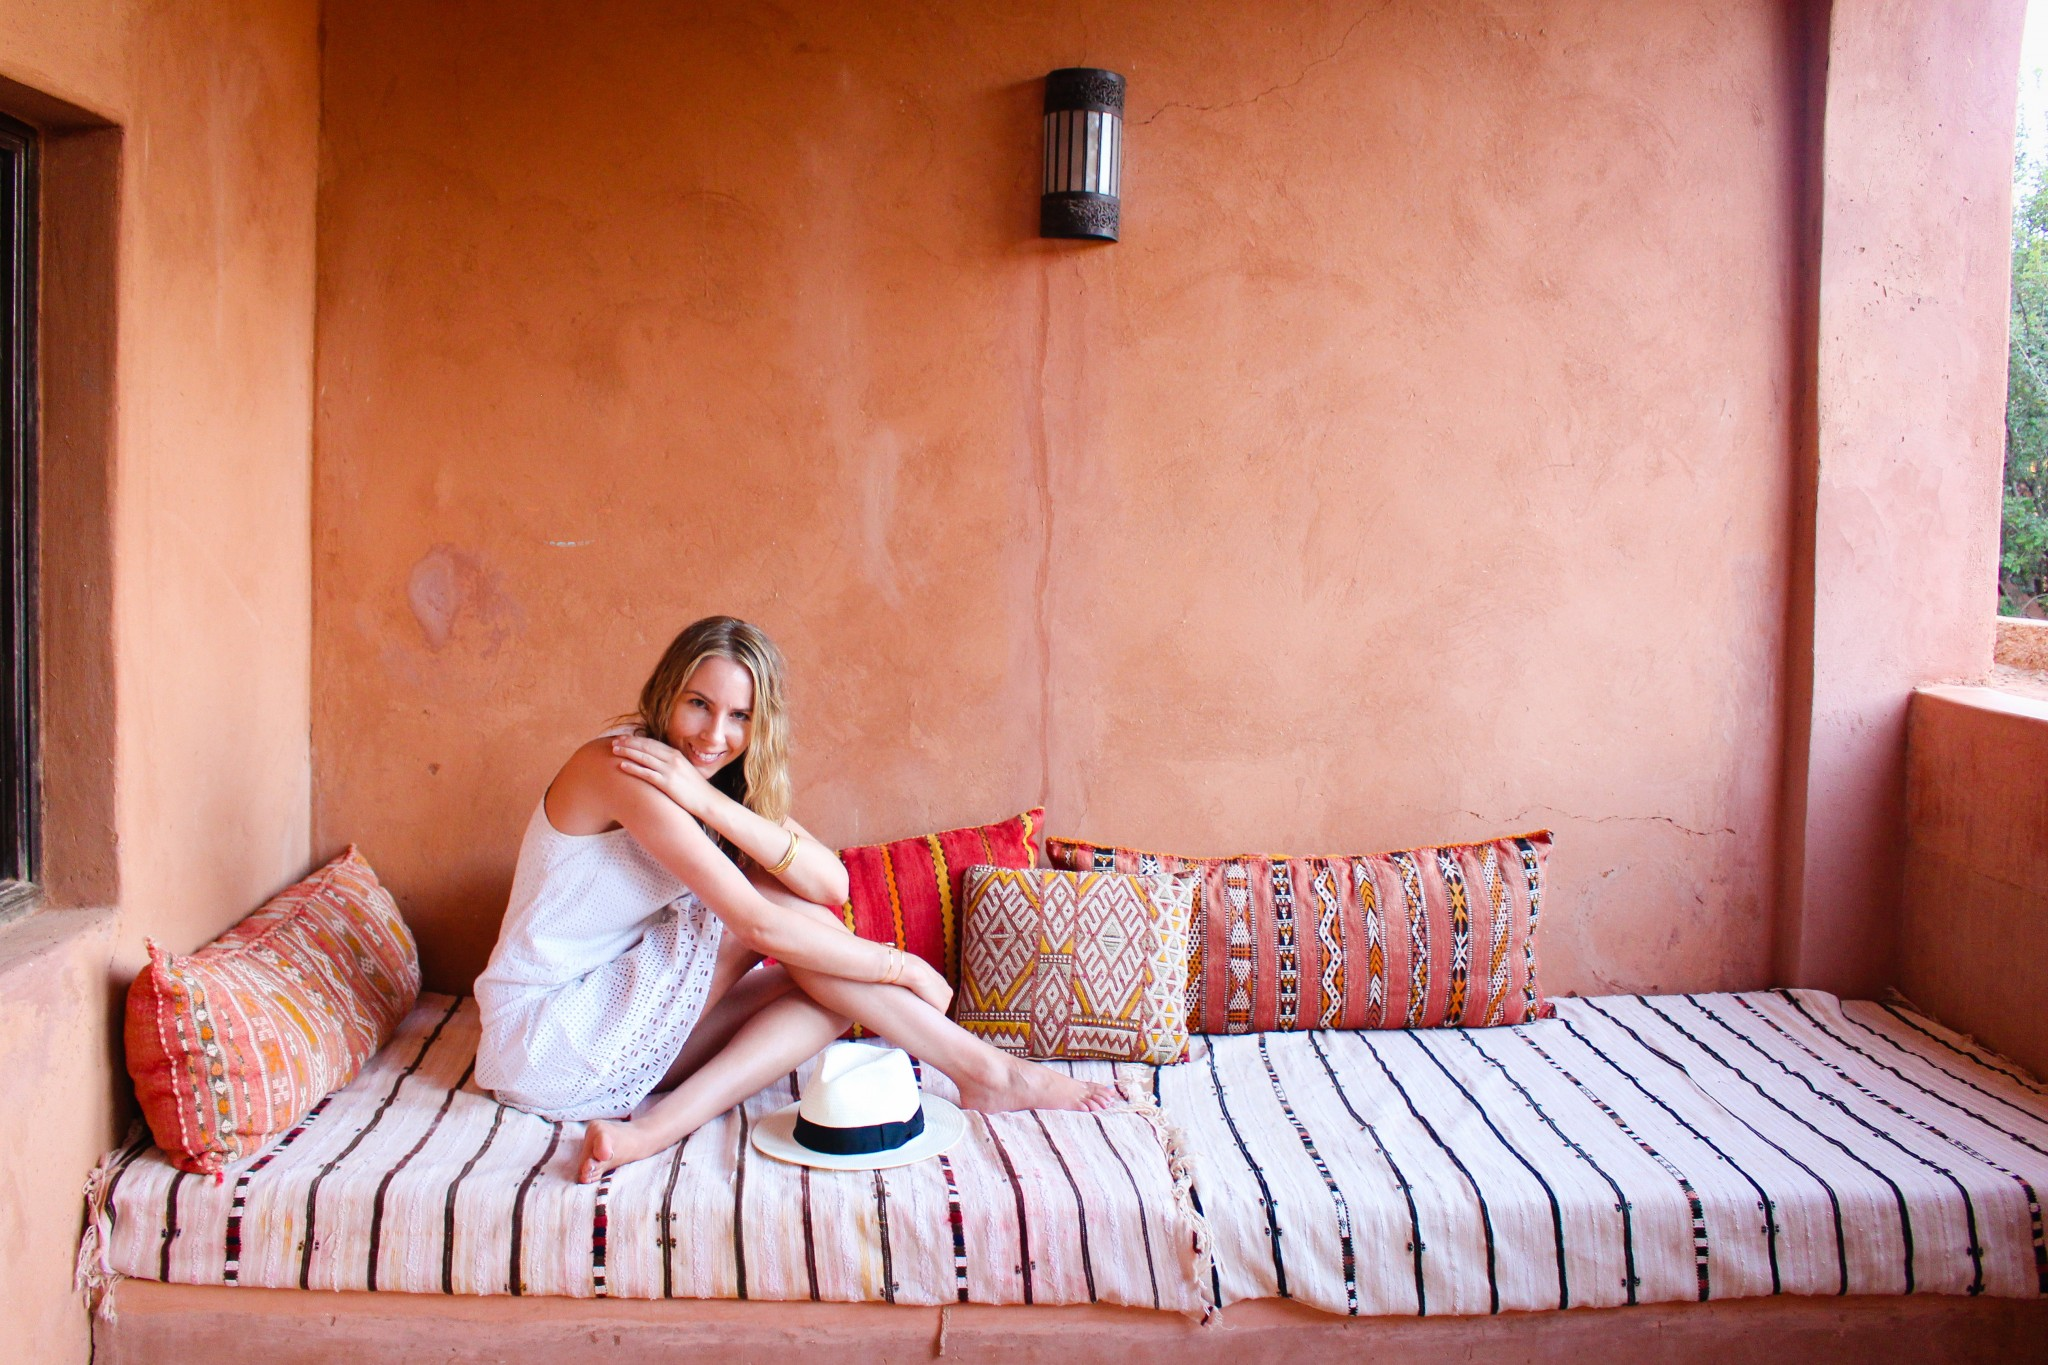 Room 3 Terrace at Kasbah Bab Ourika, Morocco | Maroc | Luxury Travel |Atlas Mountains | Ourika Valley